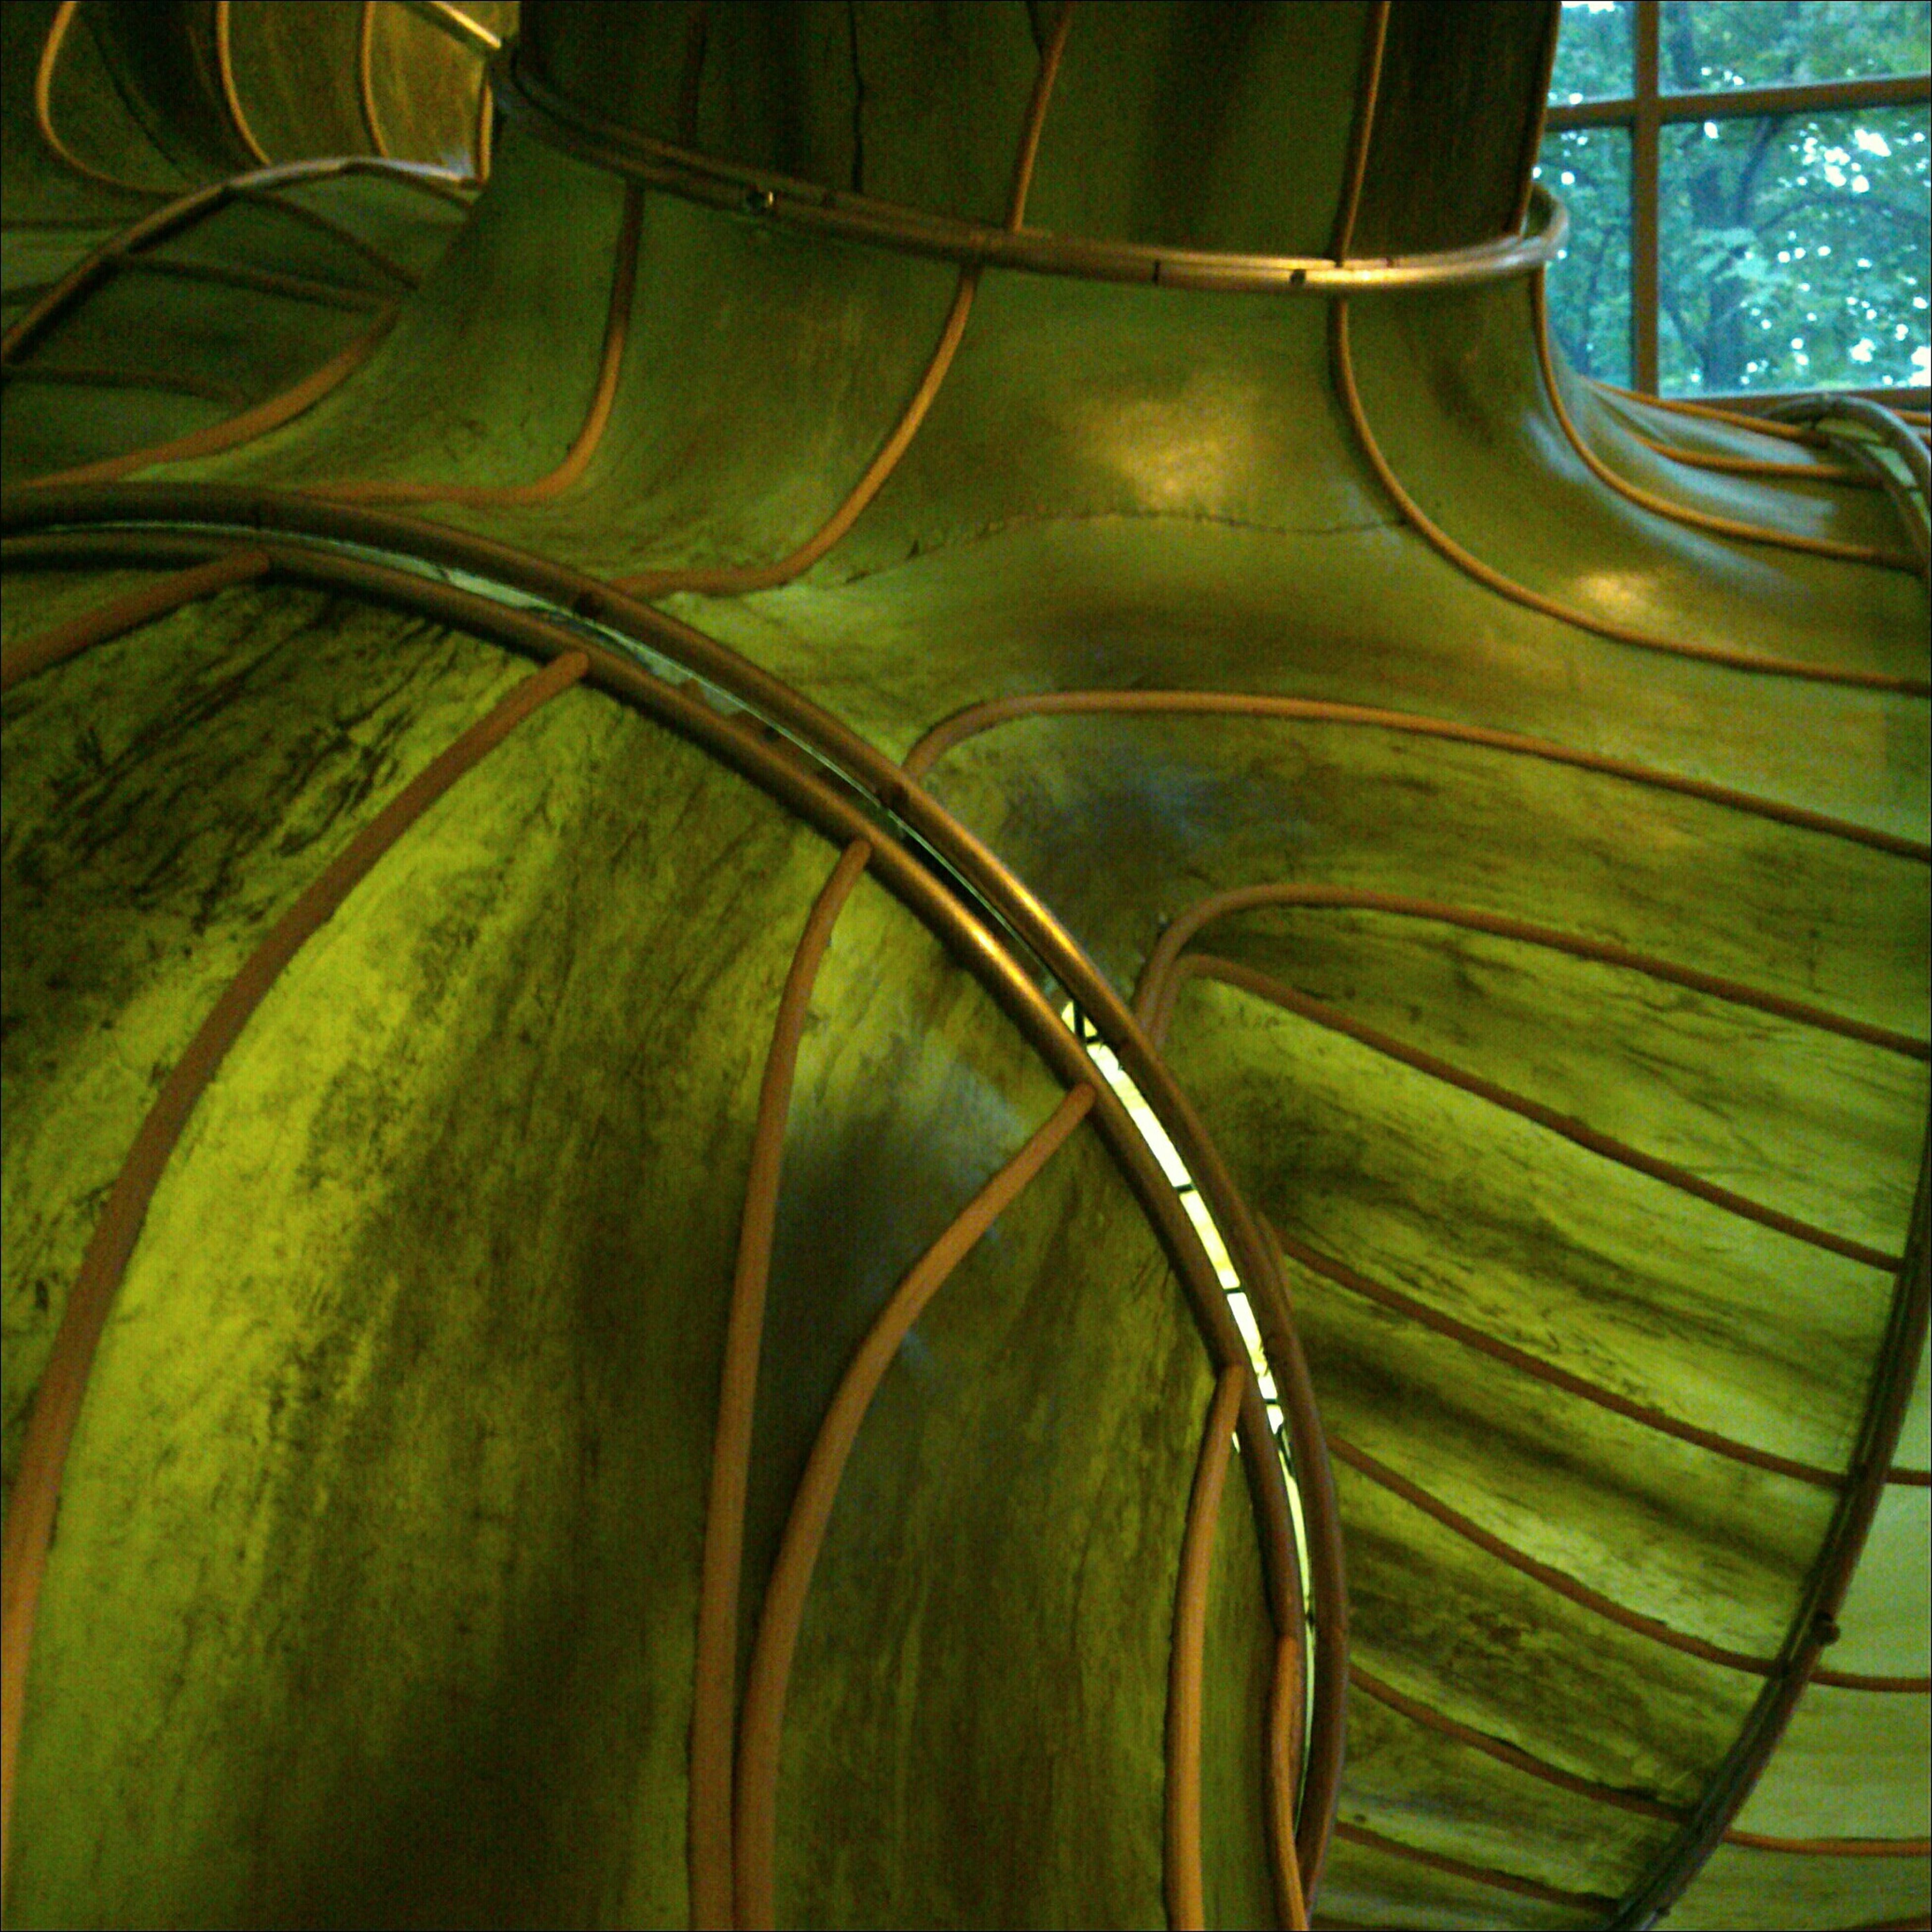 metal, close-up, metallic, pattern, full frame, no people, backgrounds, green color, part of, day, indoors, detail, spiral, sunlight, curve, design, rusty, nature, growth